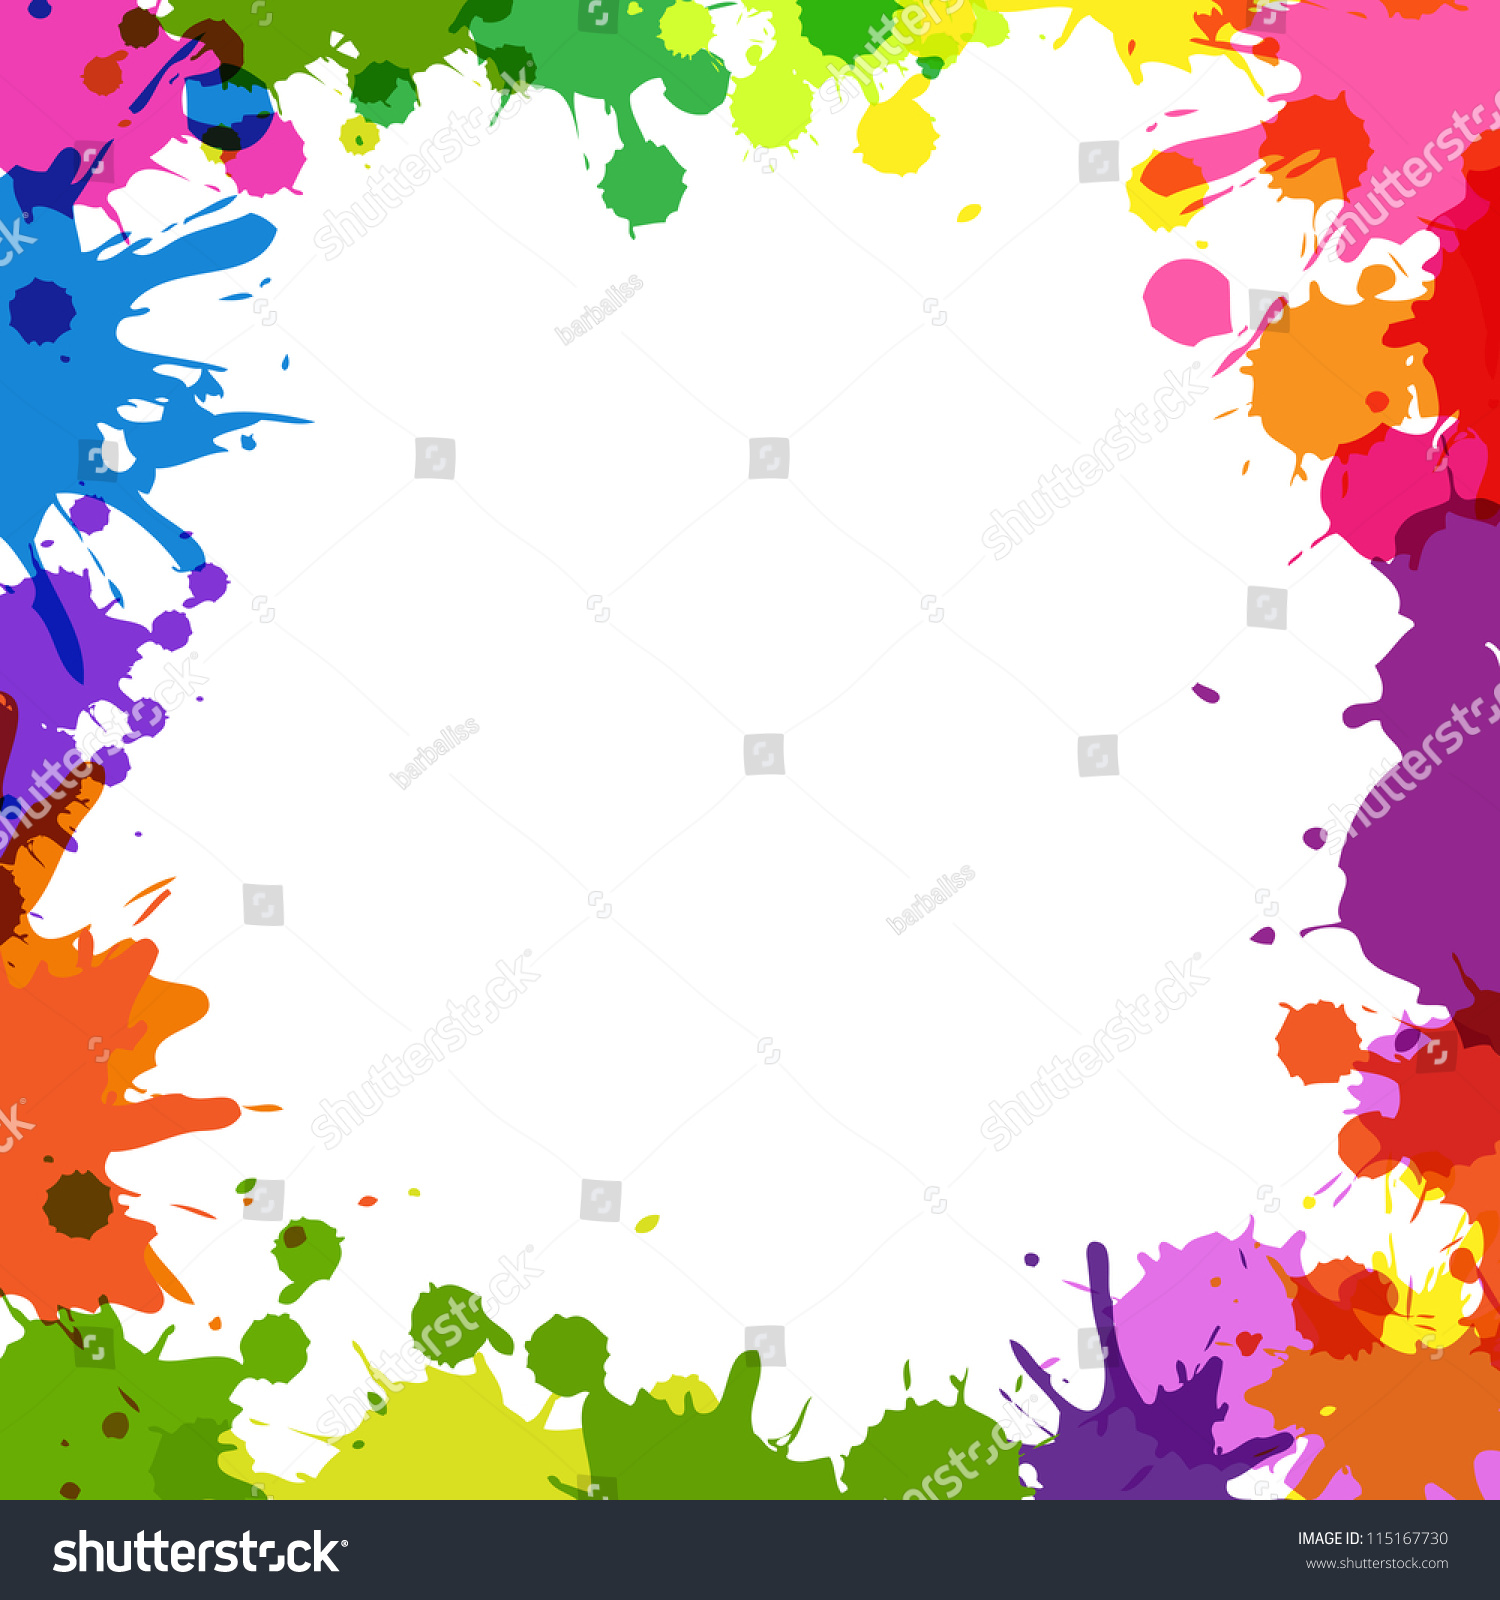 White Backgrounds With Colorful Borders Frame Color Blo...